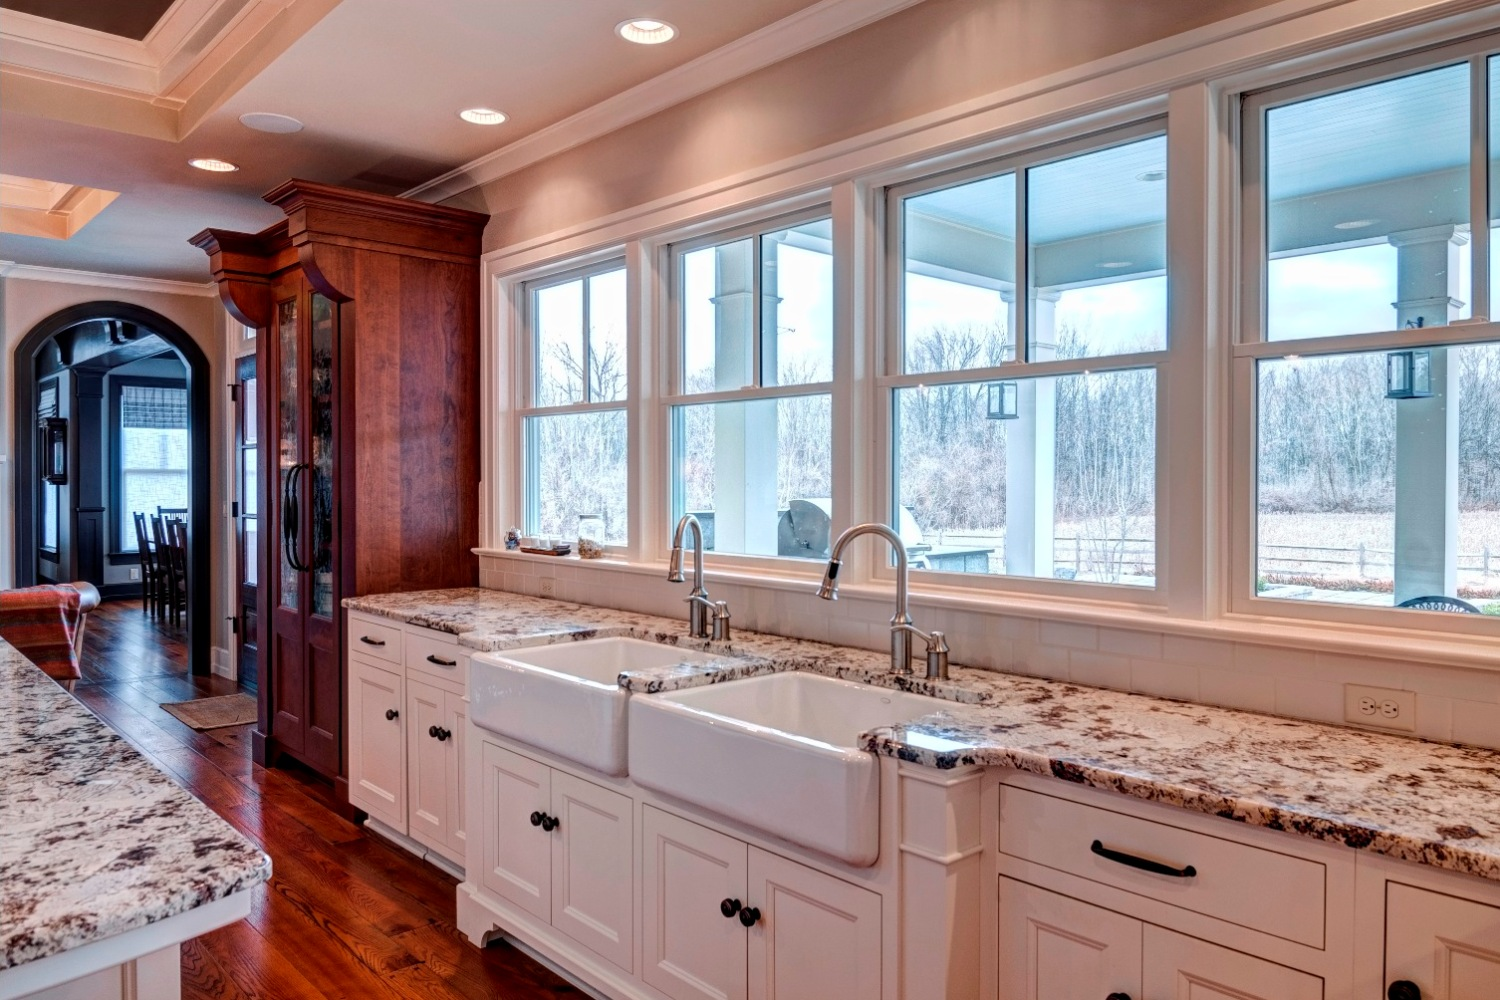 Commercial Kitchen Design At Home